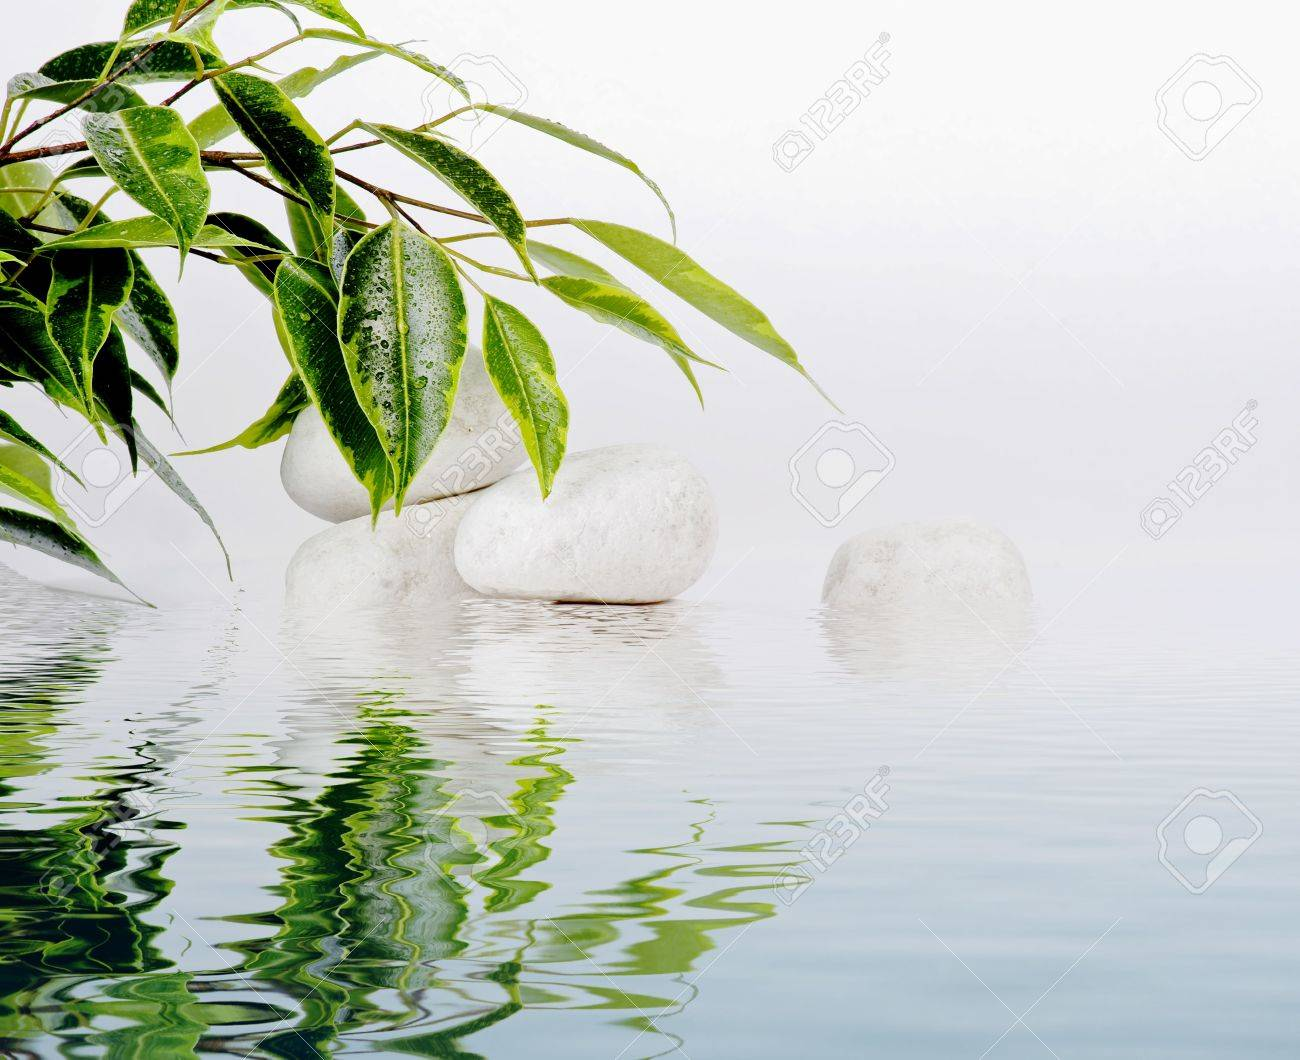 Ficus leaves and white stones in water reflection Stock Photo - 8095121